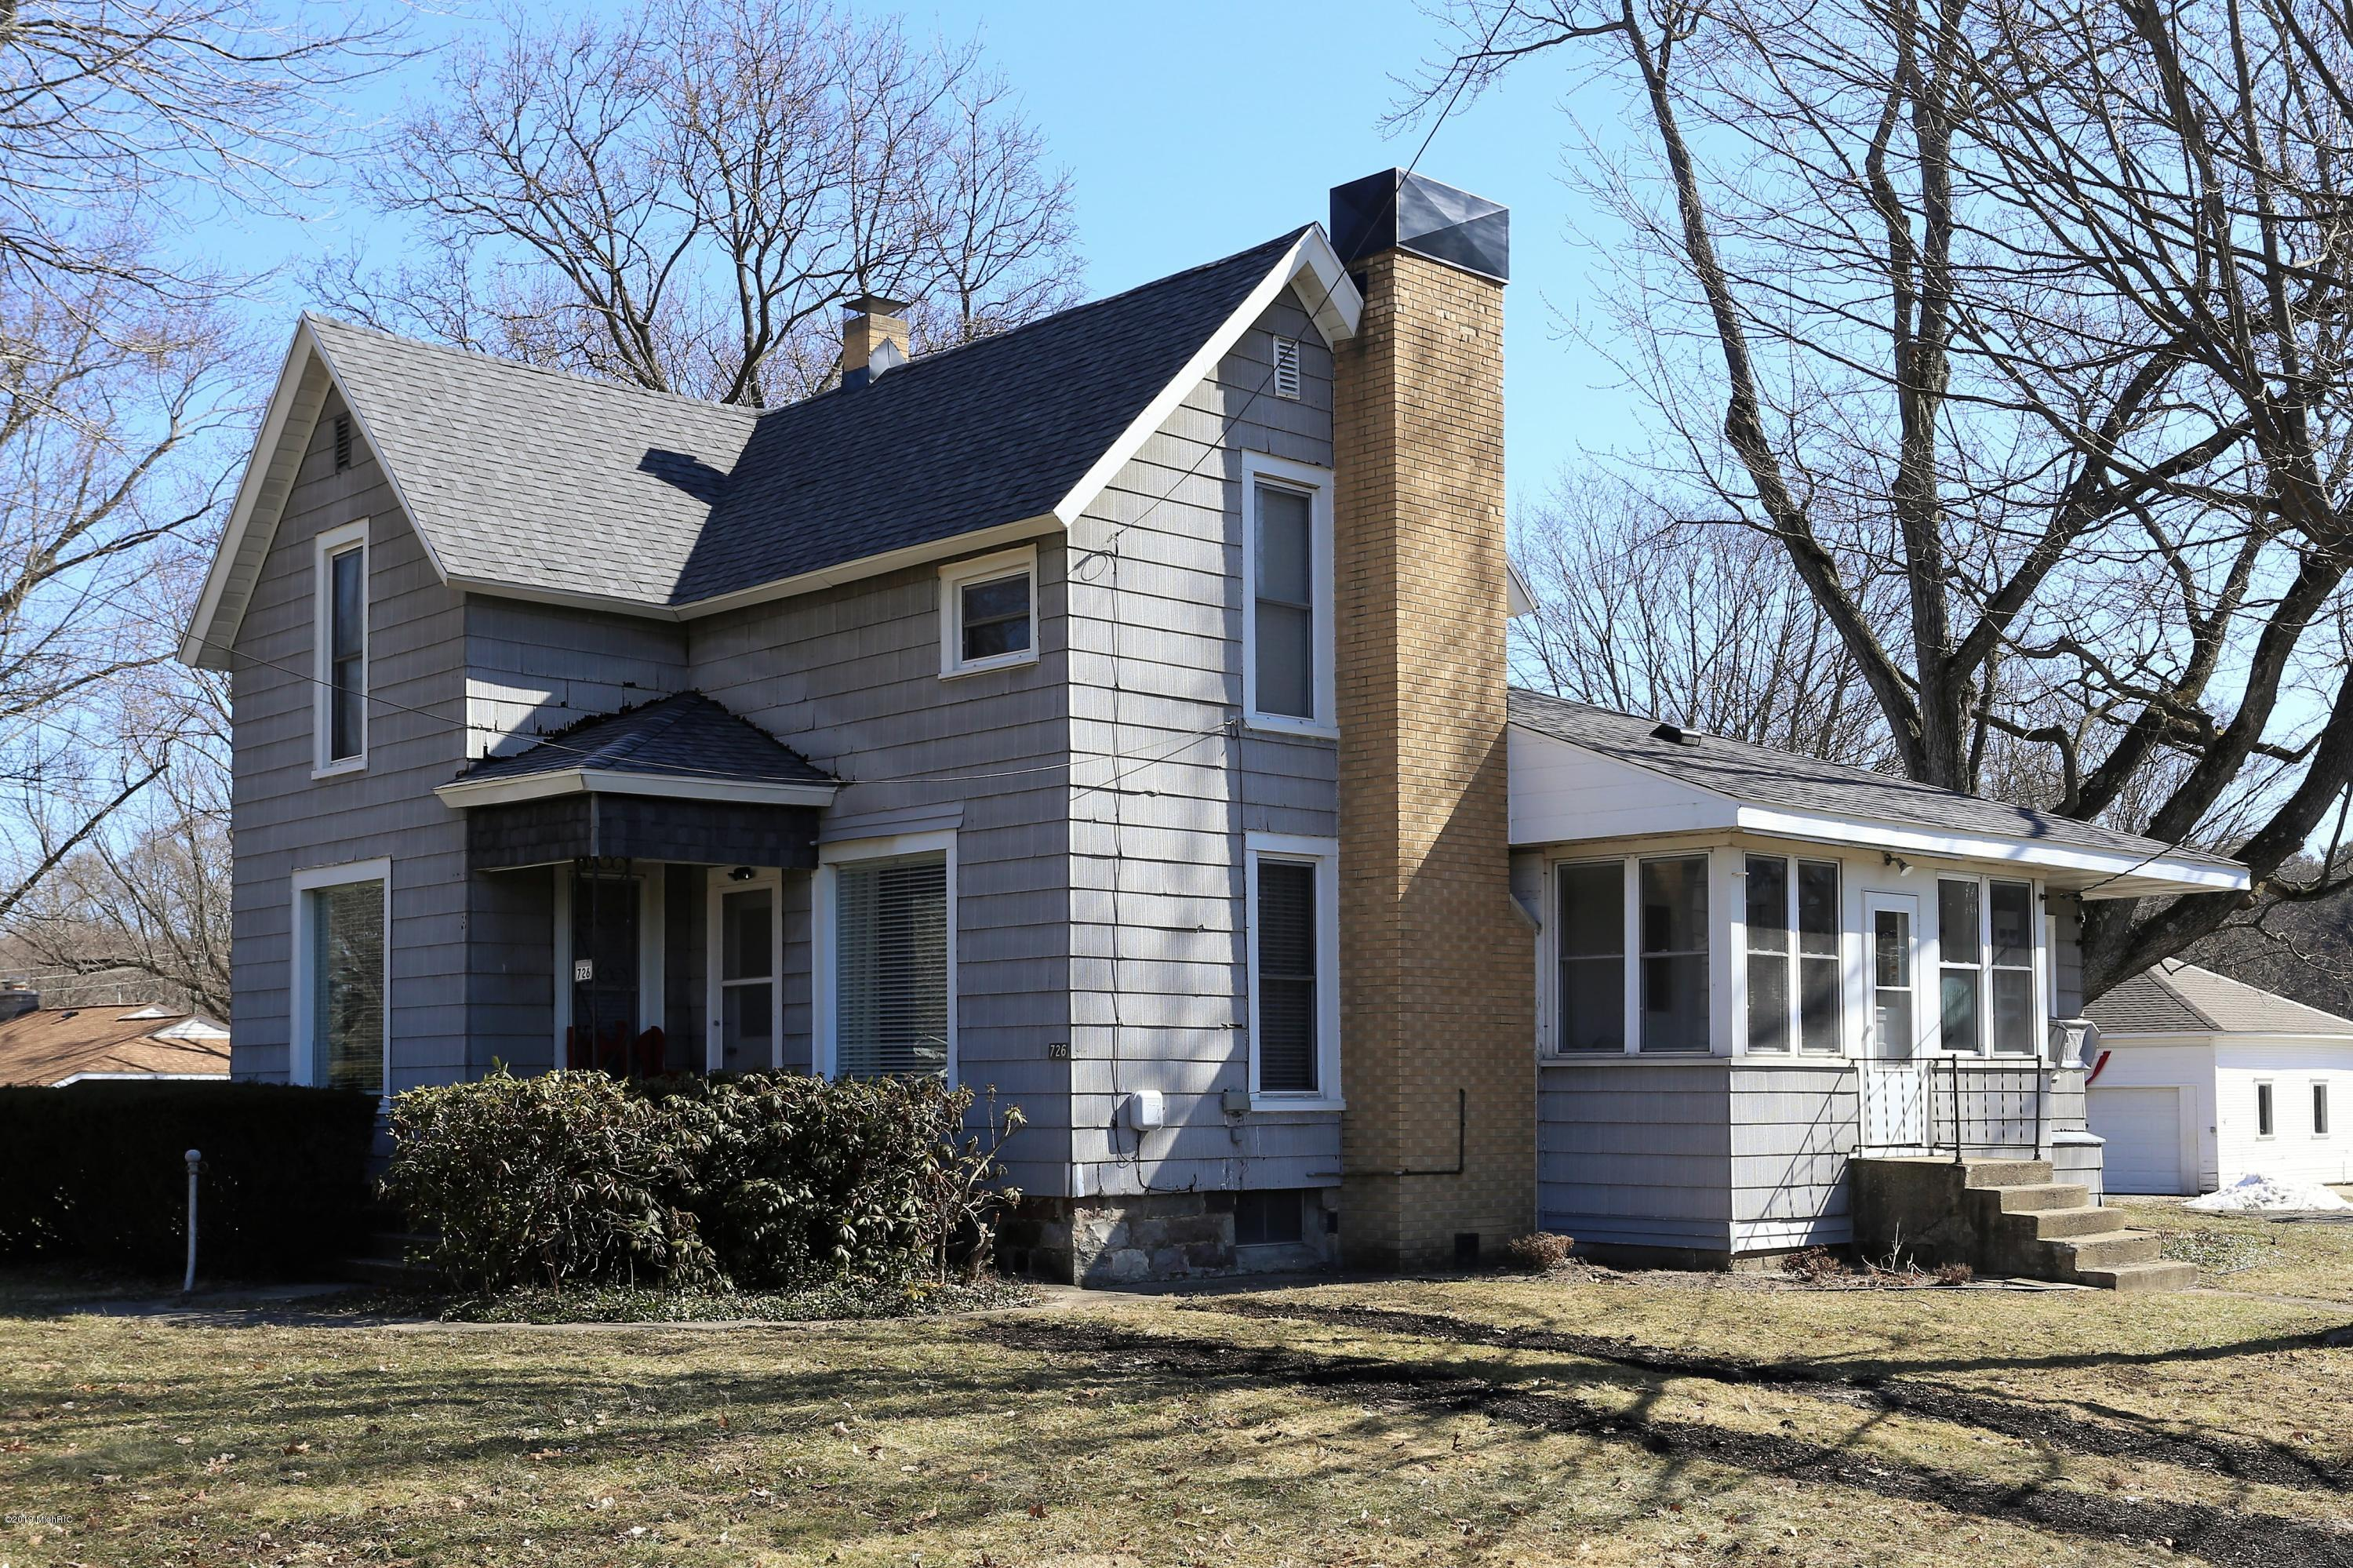 Photo for 726 N Kalamazoo Street, Paw Paw, MI 49079 (MLS # 19009523)